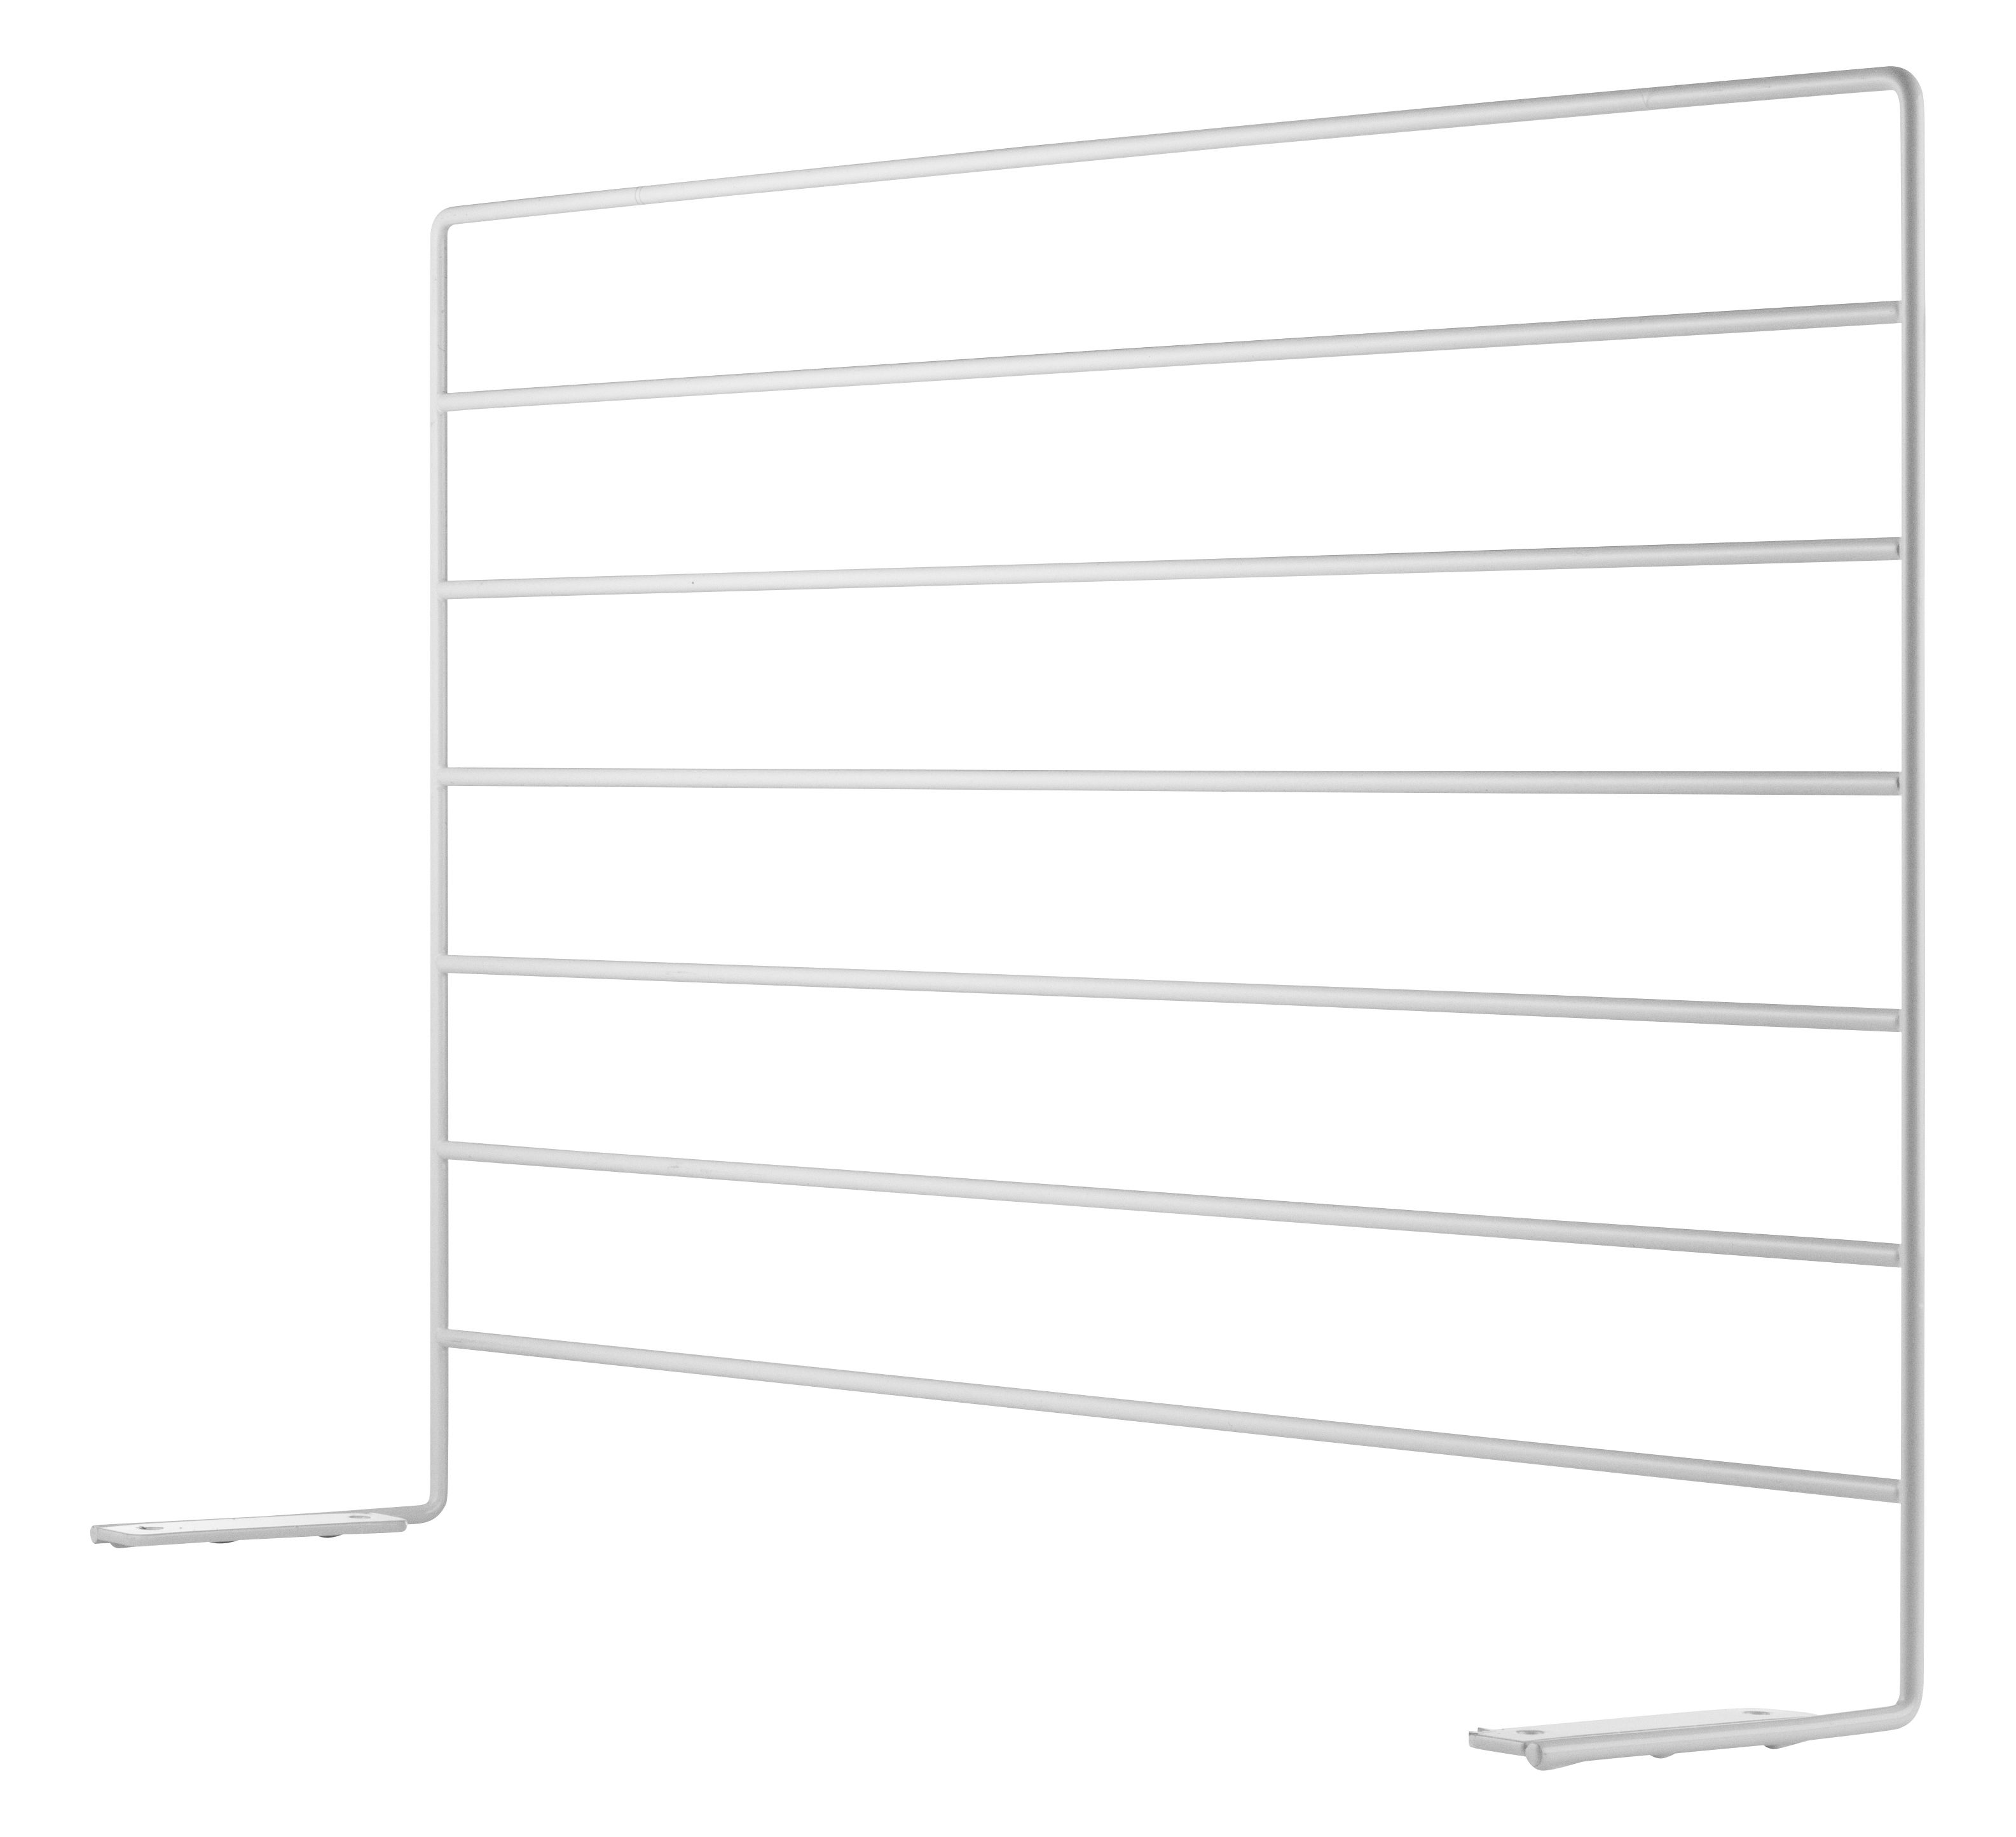 Furniture - Office Furniture - String Works Screen - For desk - Steel by String Furniture - Screen / White - Lacquered steel